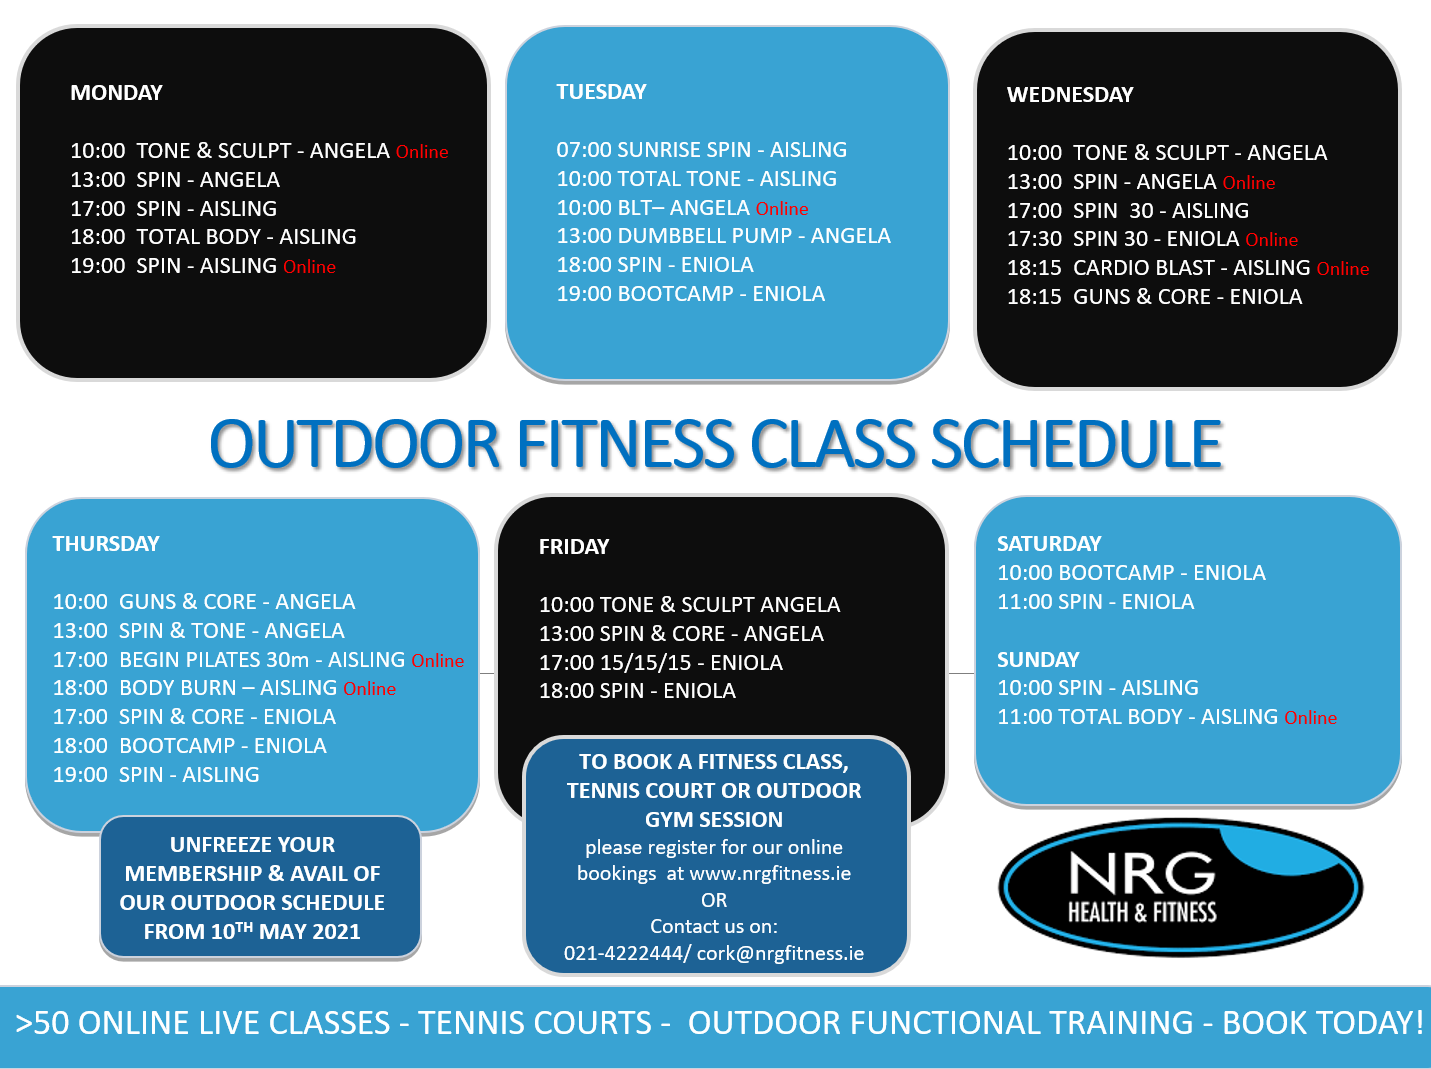 Outdoor Fitness Classes